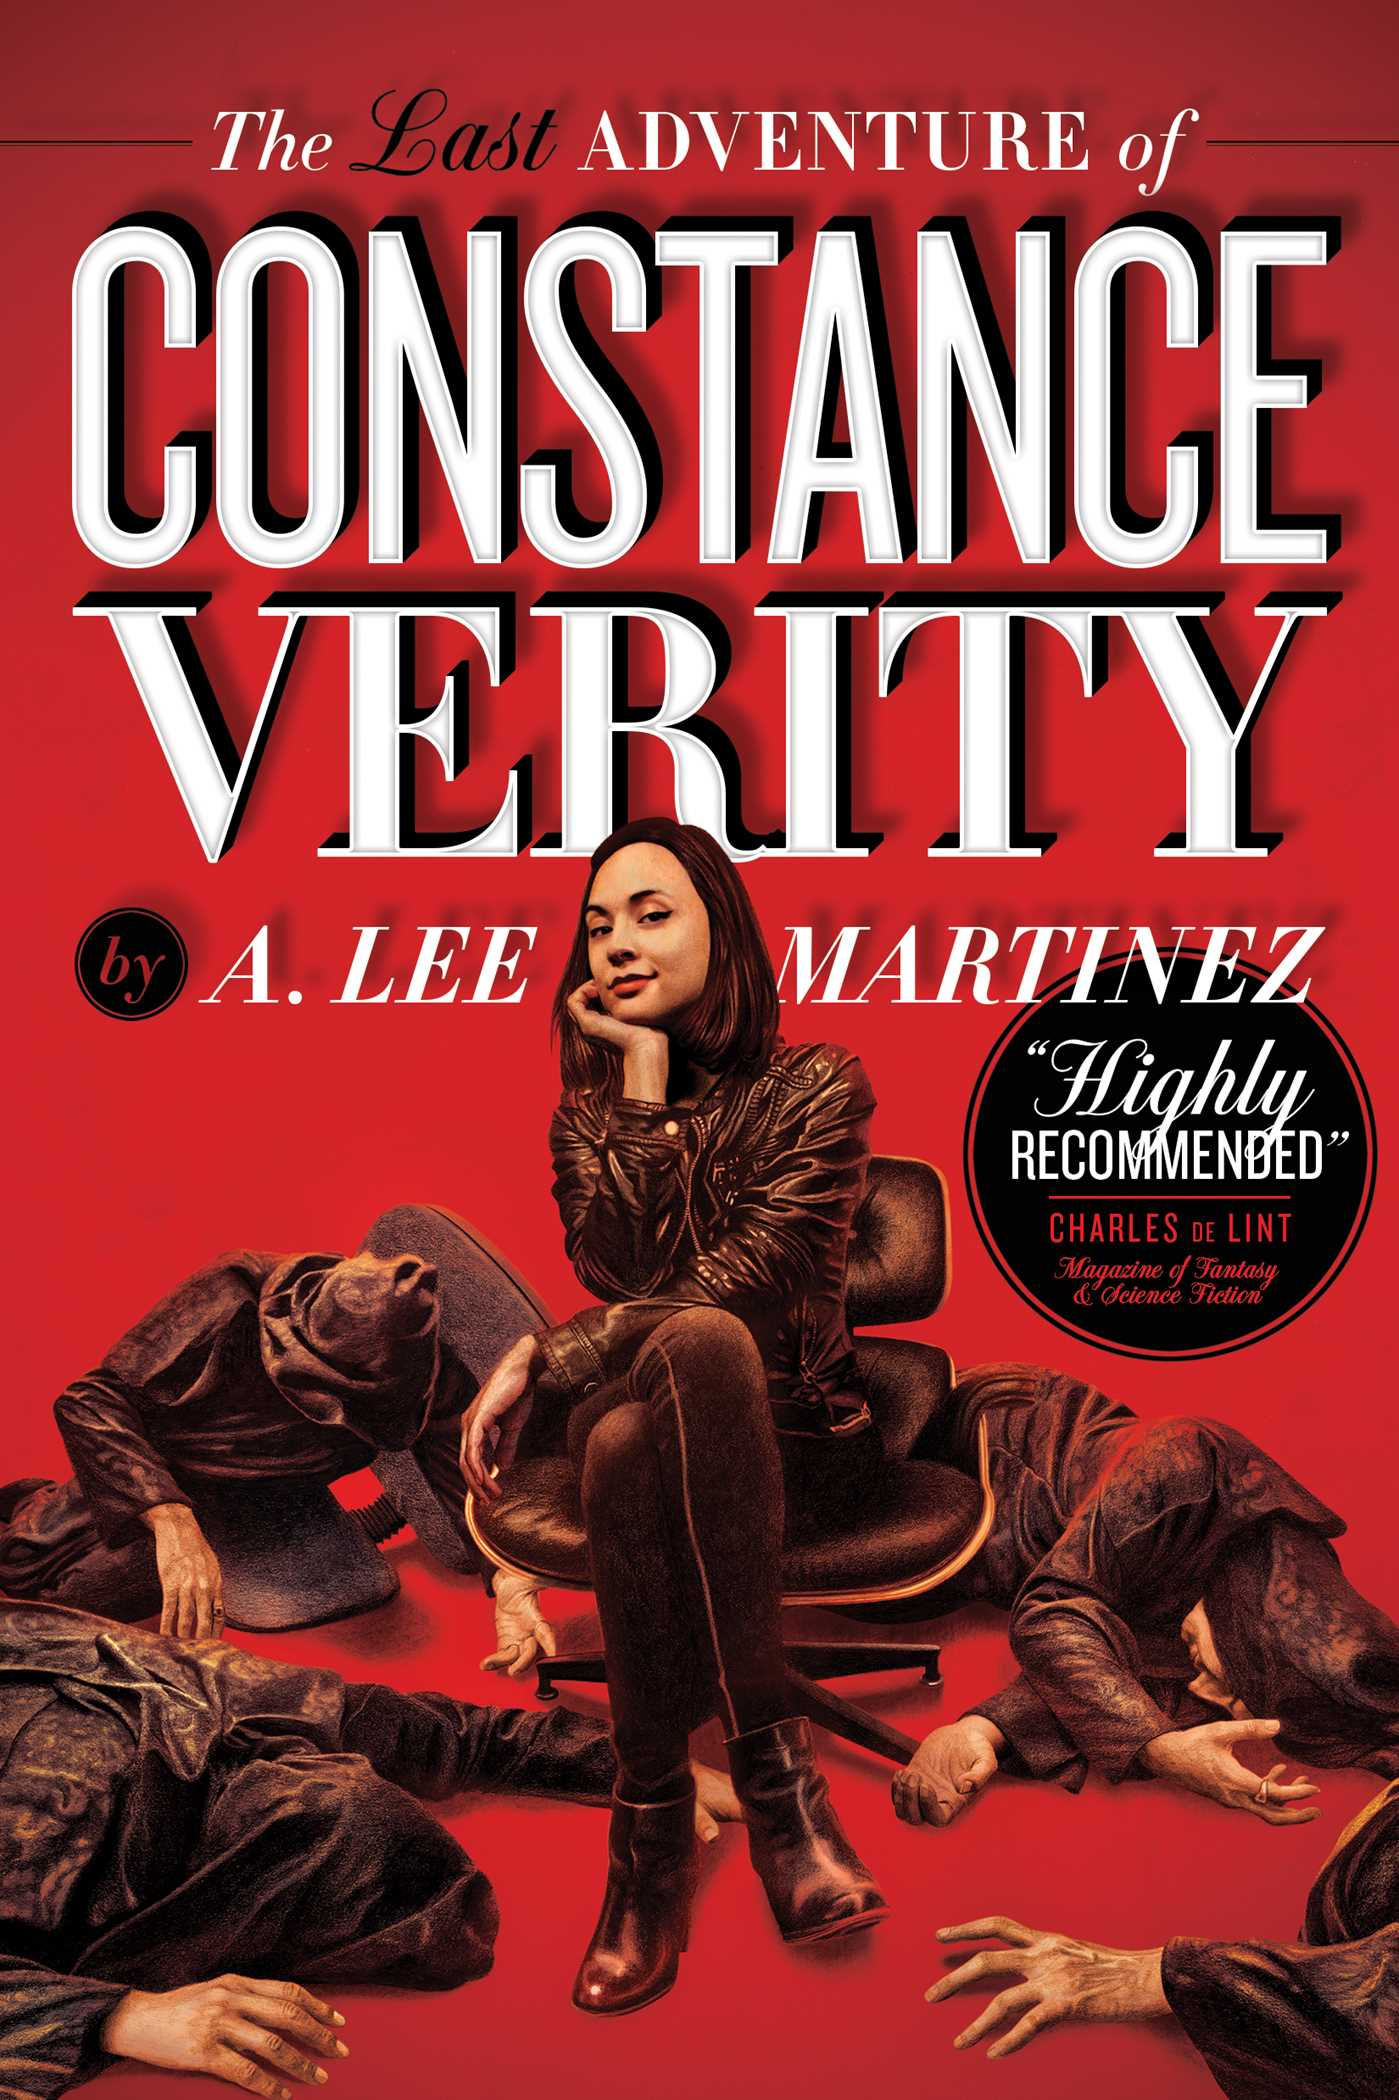 The last adventure of constance verity 9781481443524 hr